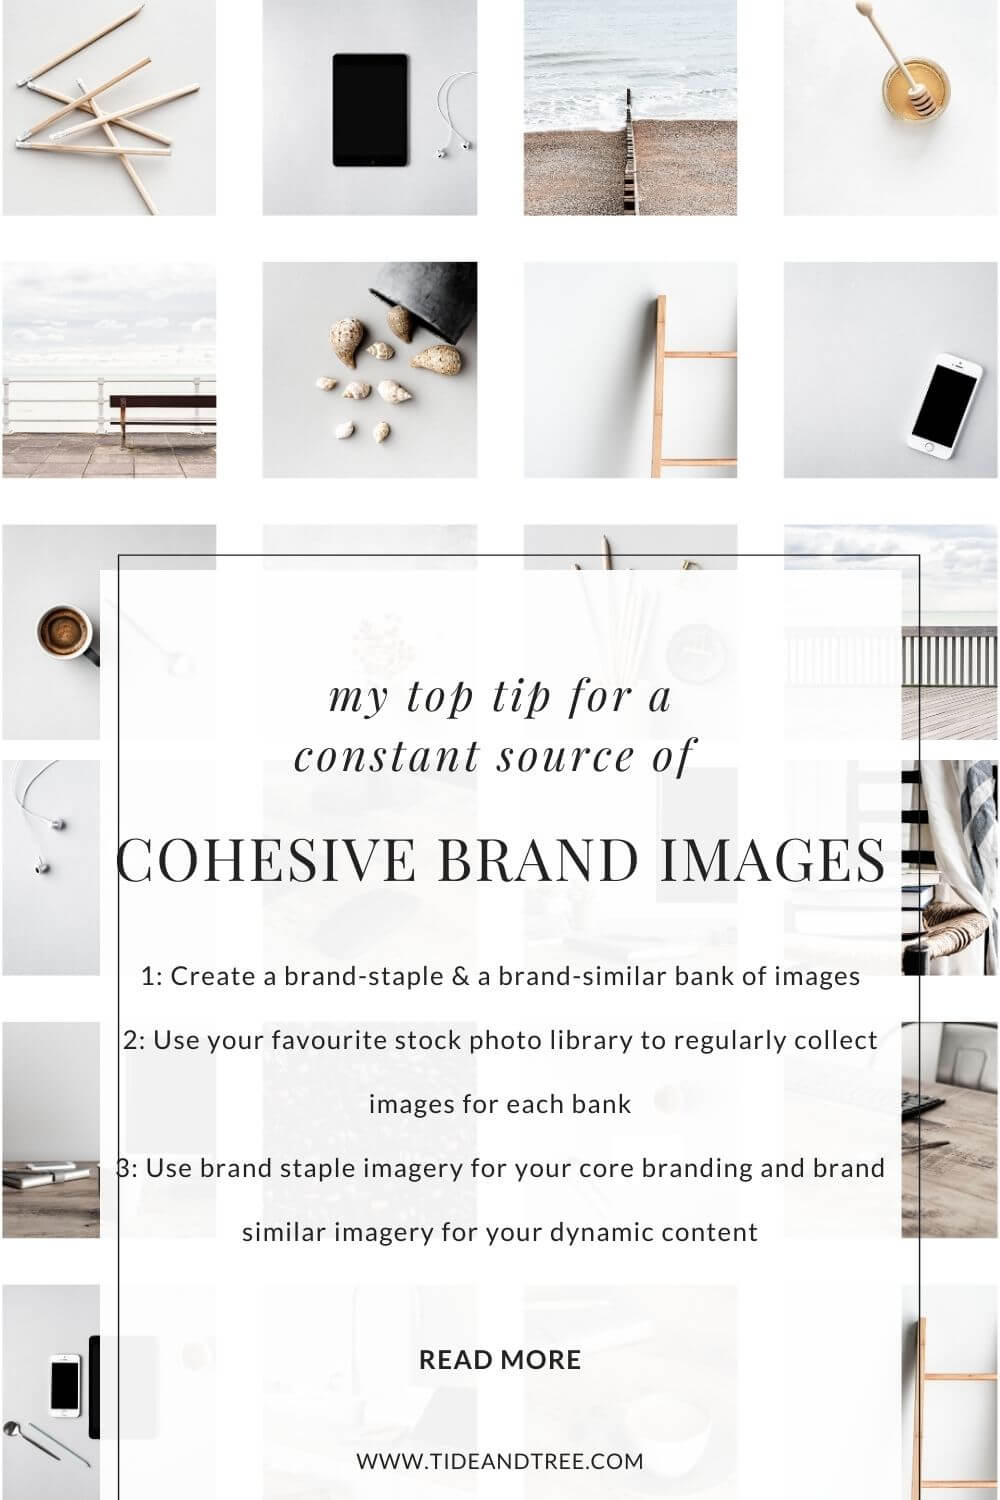 Here's my top tip for cohesive brand images